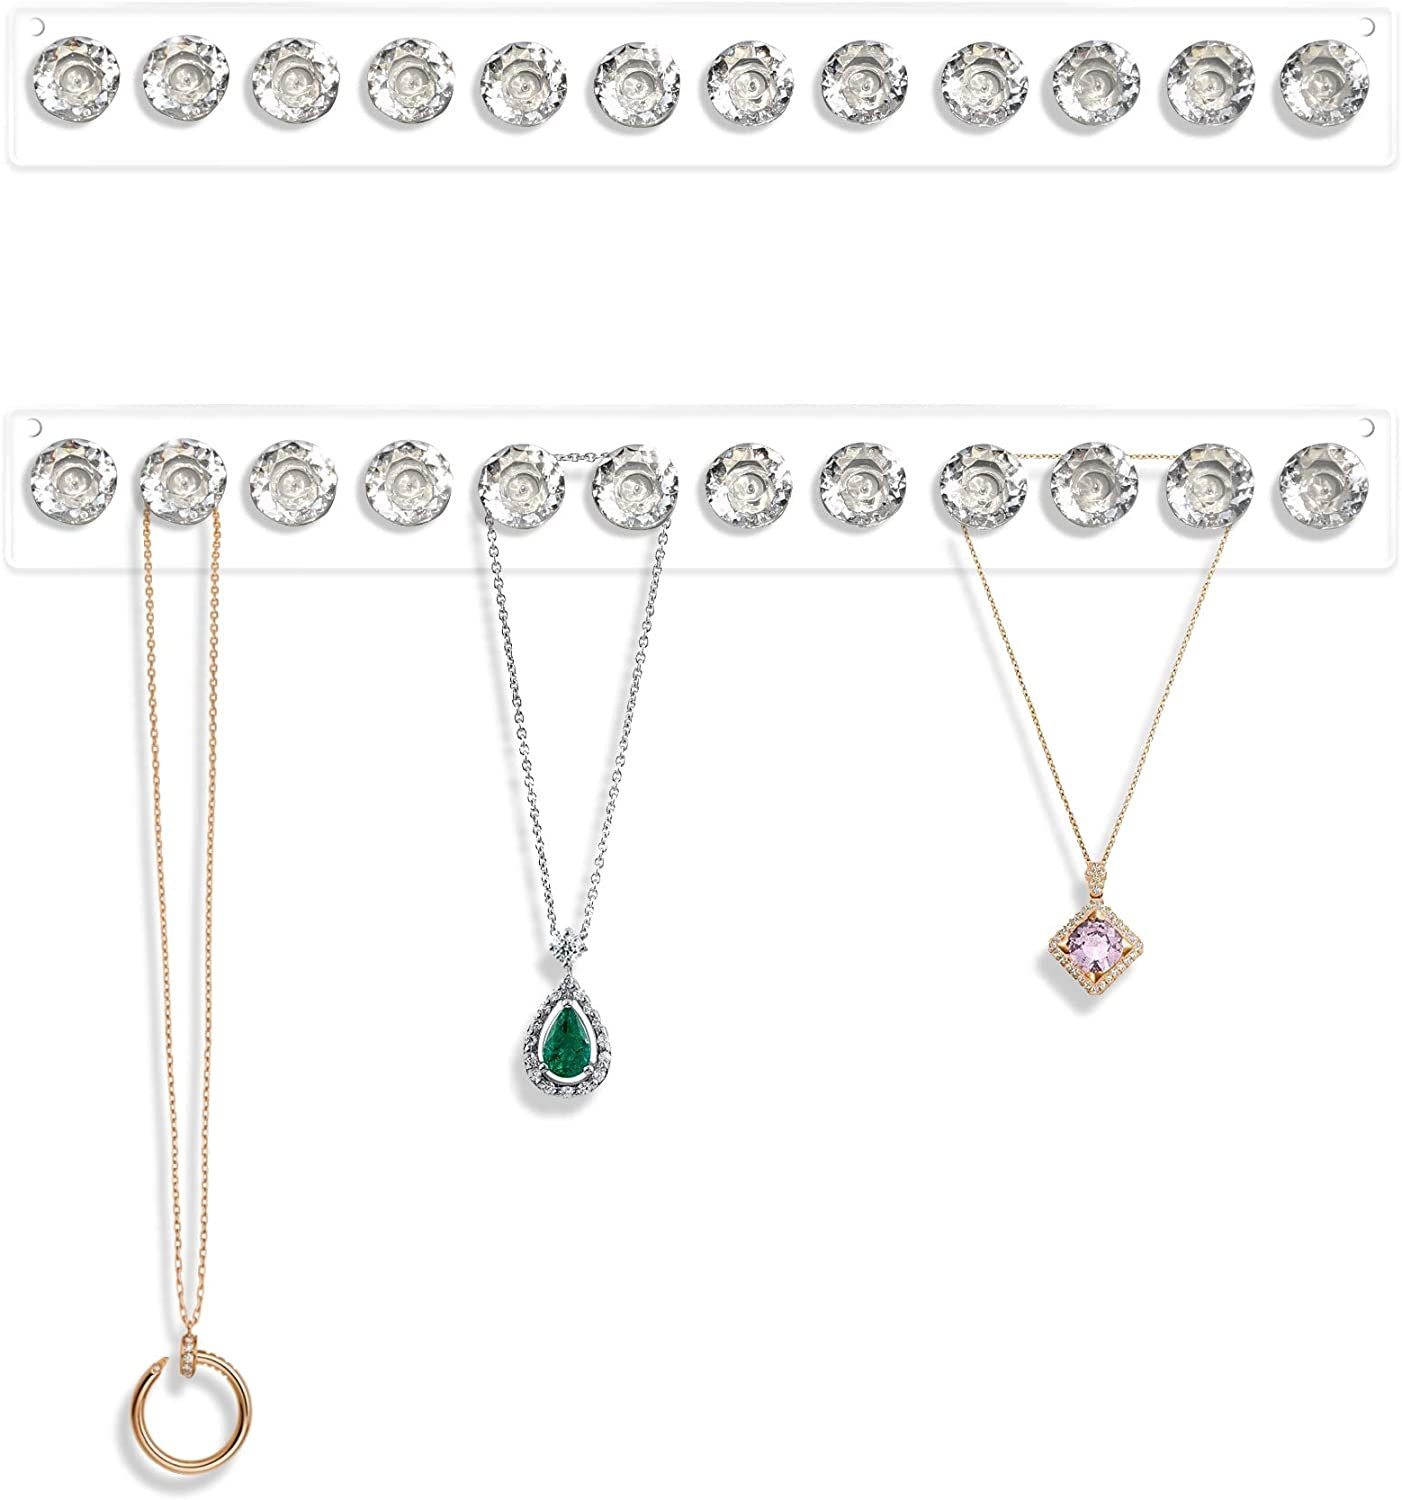 2 Pack Necklace Hangers Acrylic Necklaces Holder Wall Mounted Jewelry Organizer Hanging with 12 Diamond Shape Hooks, Jewelry Hangers for Necklace, Gift for Girls Women